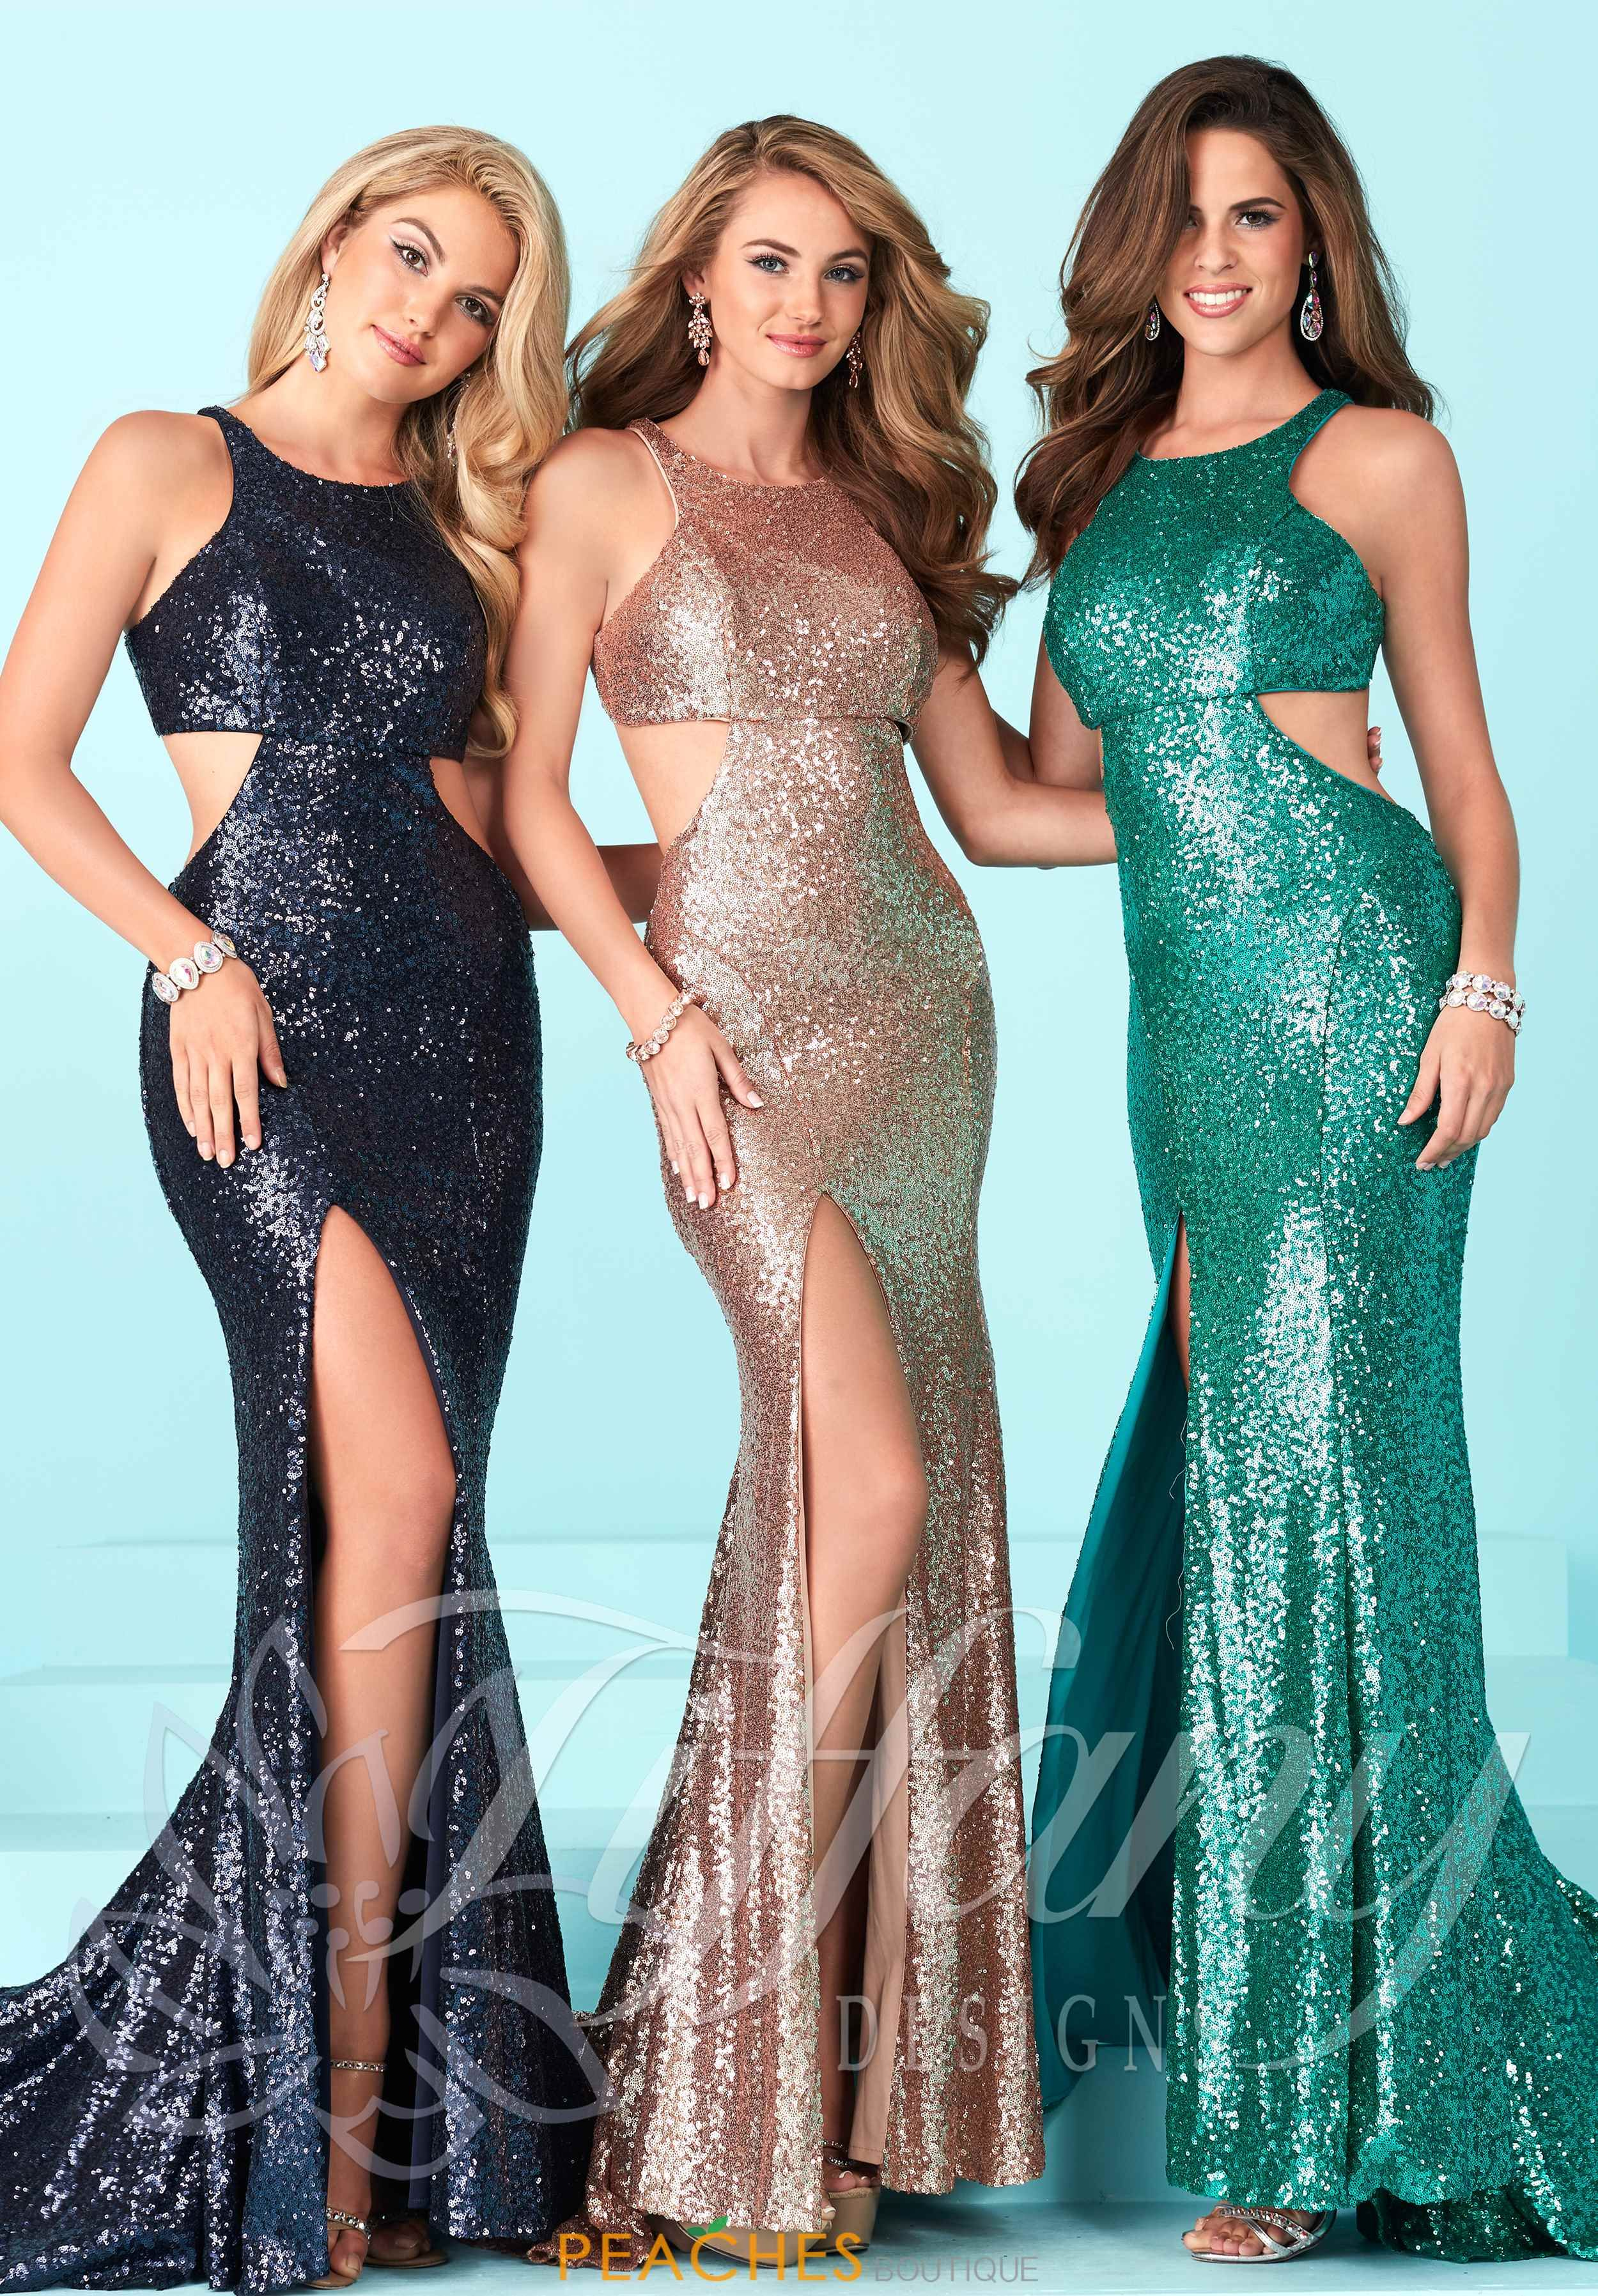 Tiffany Prom Dresses 16226 at Peaches Boutique | Prom | Pinterest ...